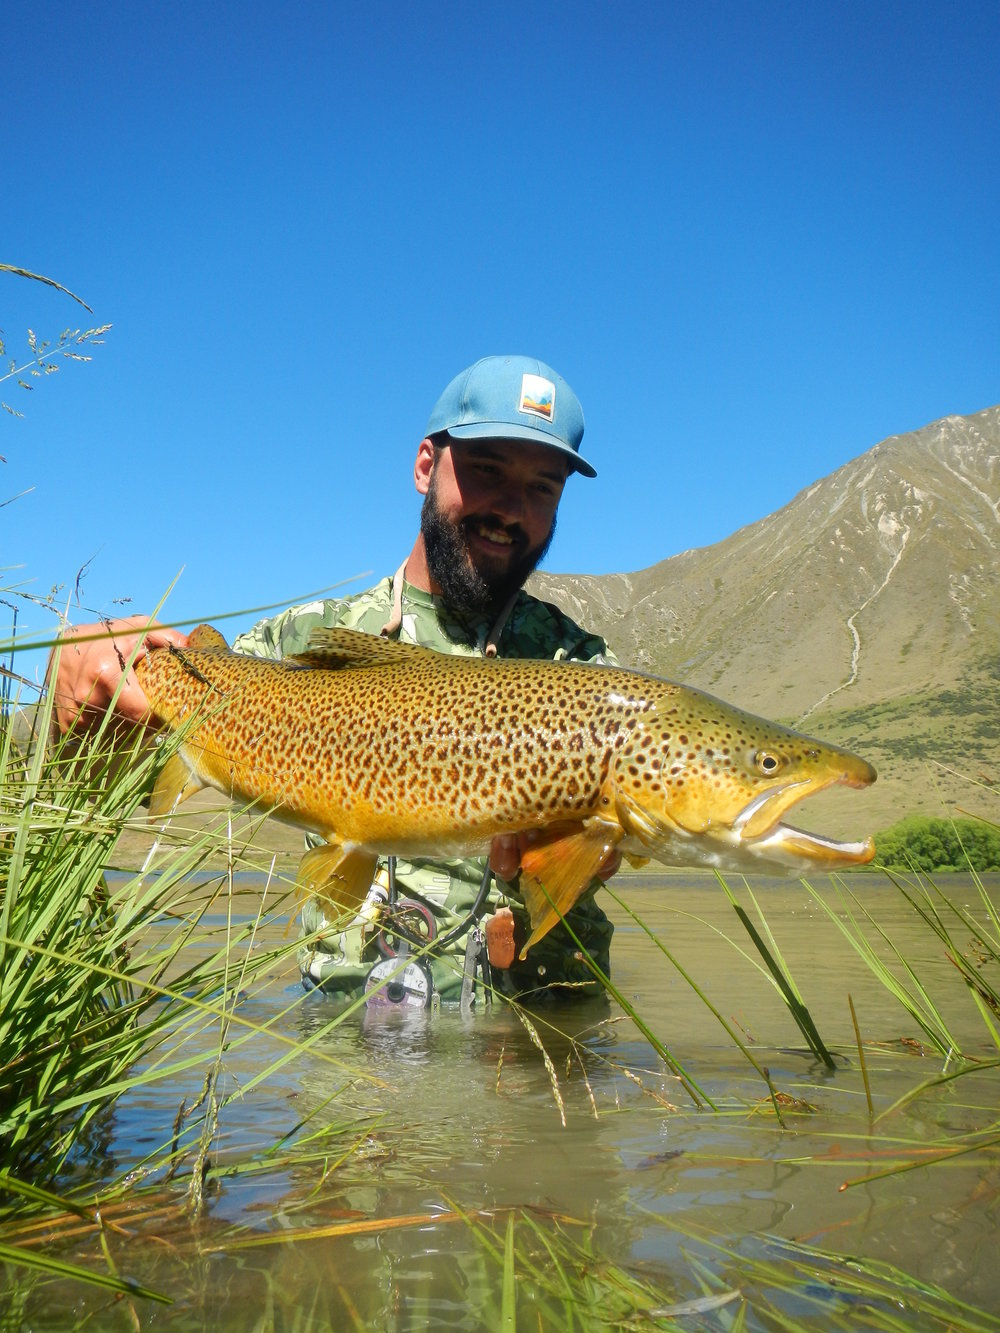 New Zealand fishing guide Jeff Forsee with big brown trout